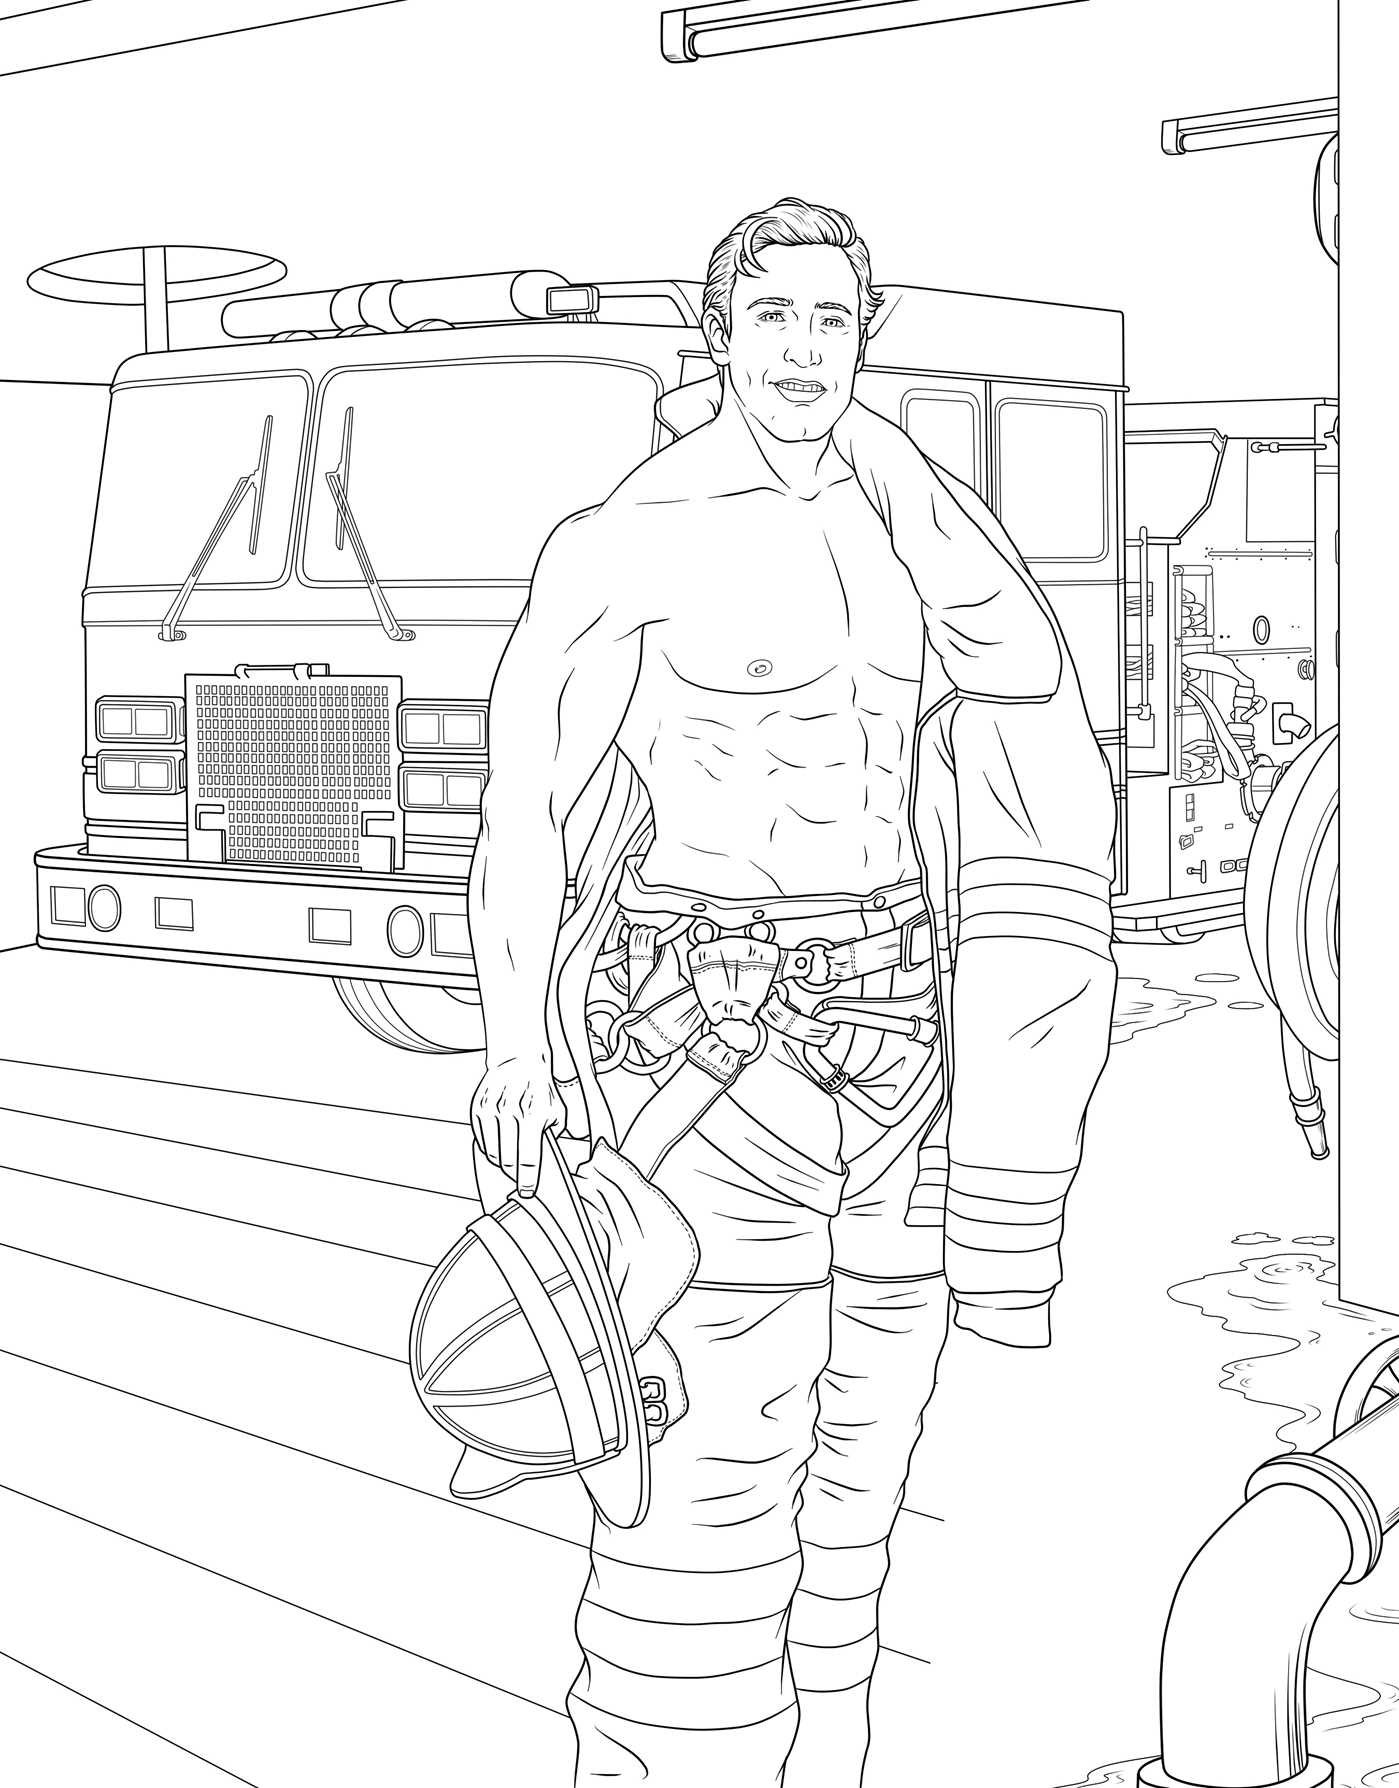 Amazon.com: Men in Uniform Adult Coloring Book (9781682611319 ...